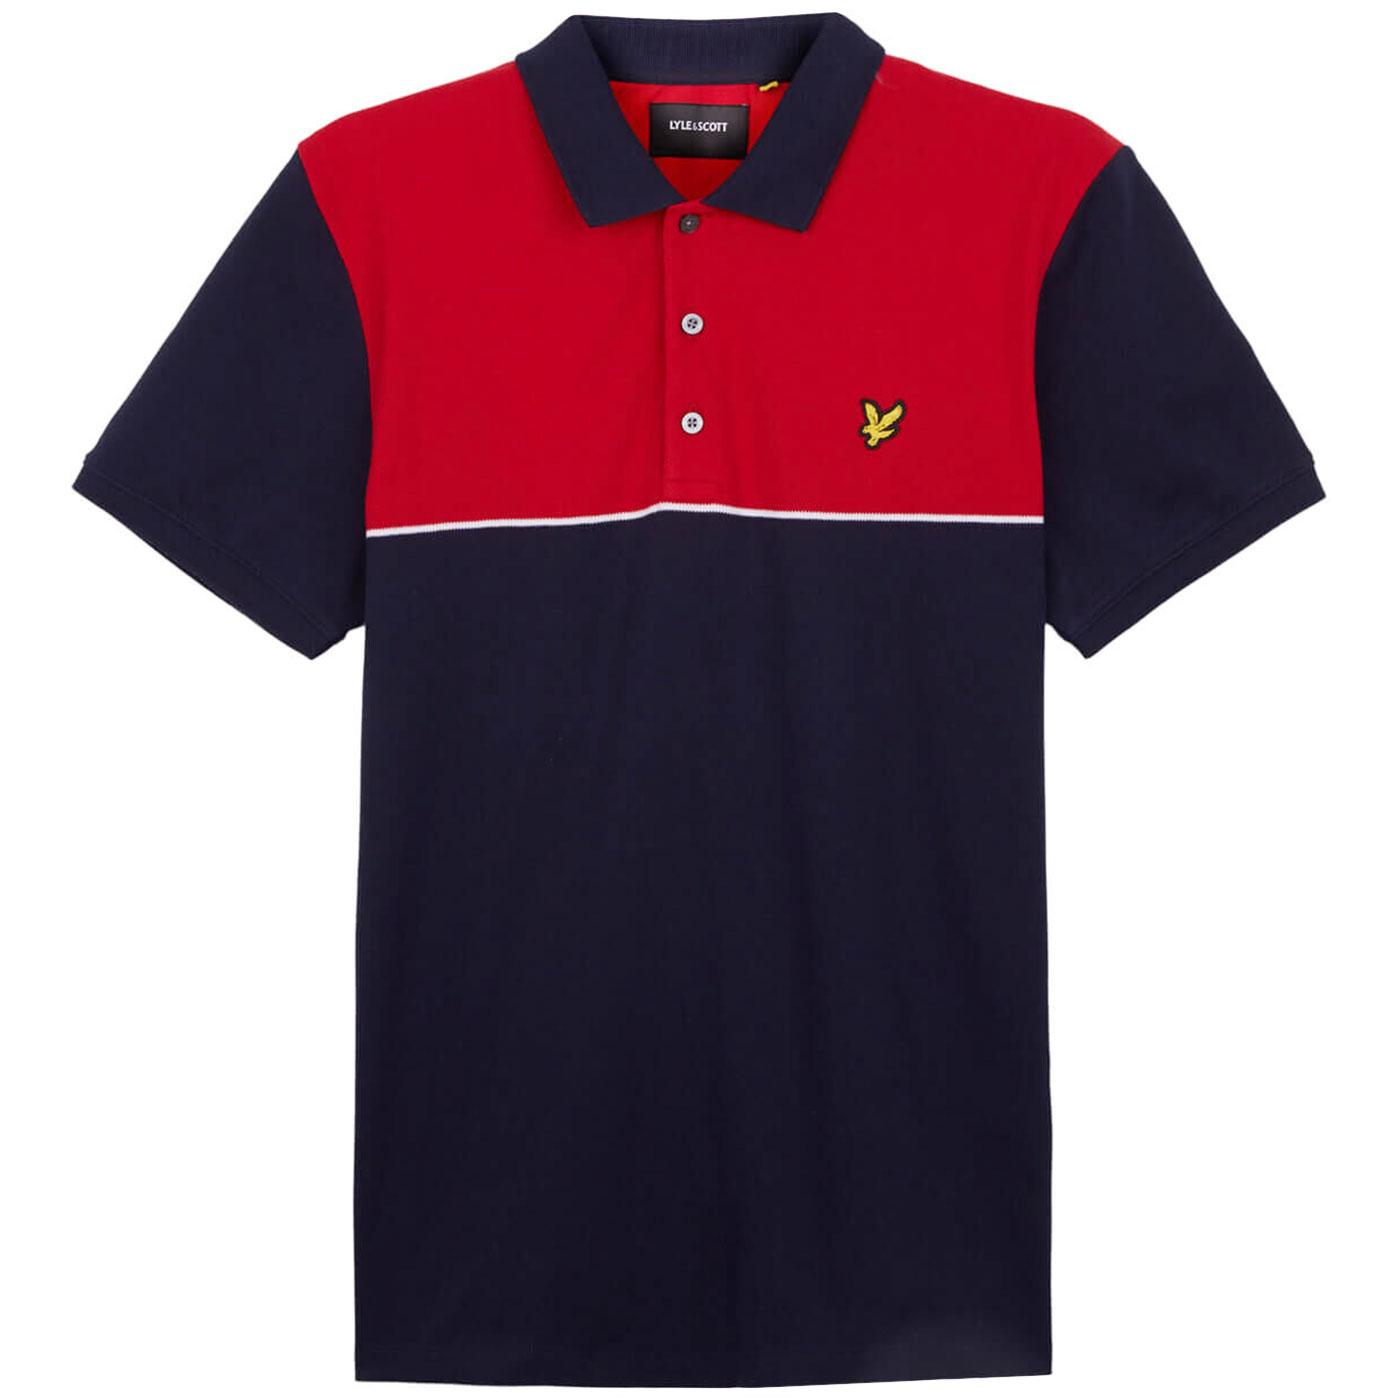 LYLE & SCOTT Yoke Block Stripe Pique Polo Shirt N